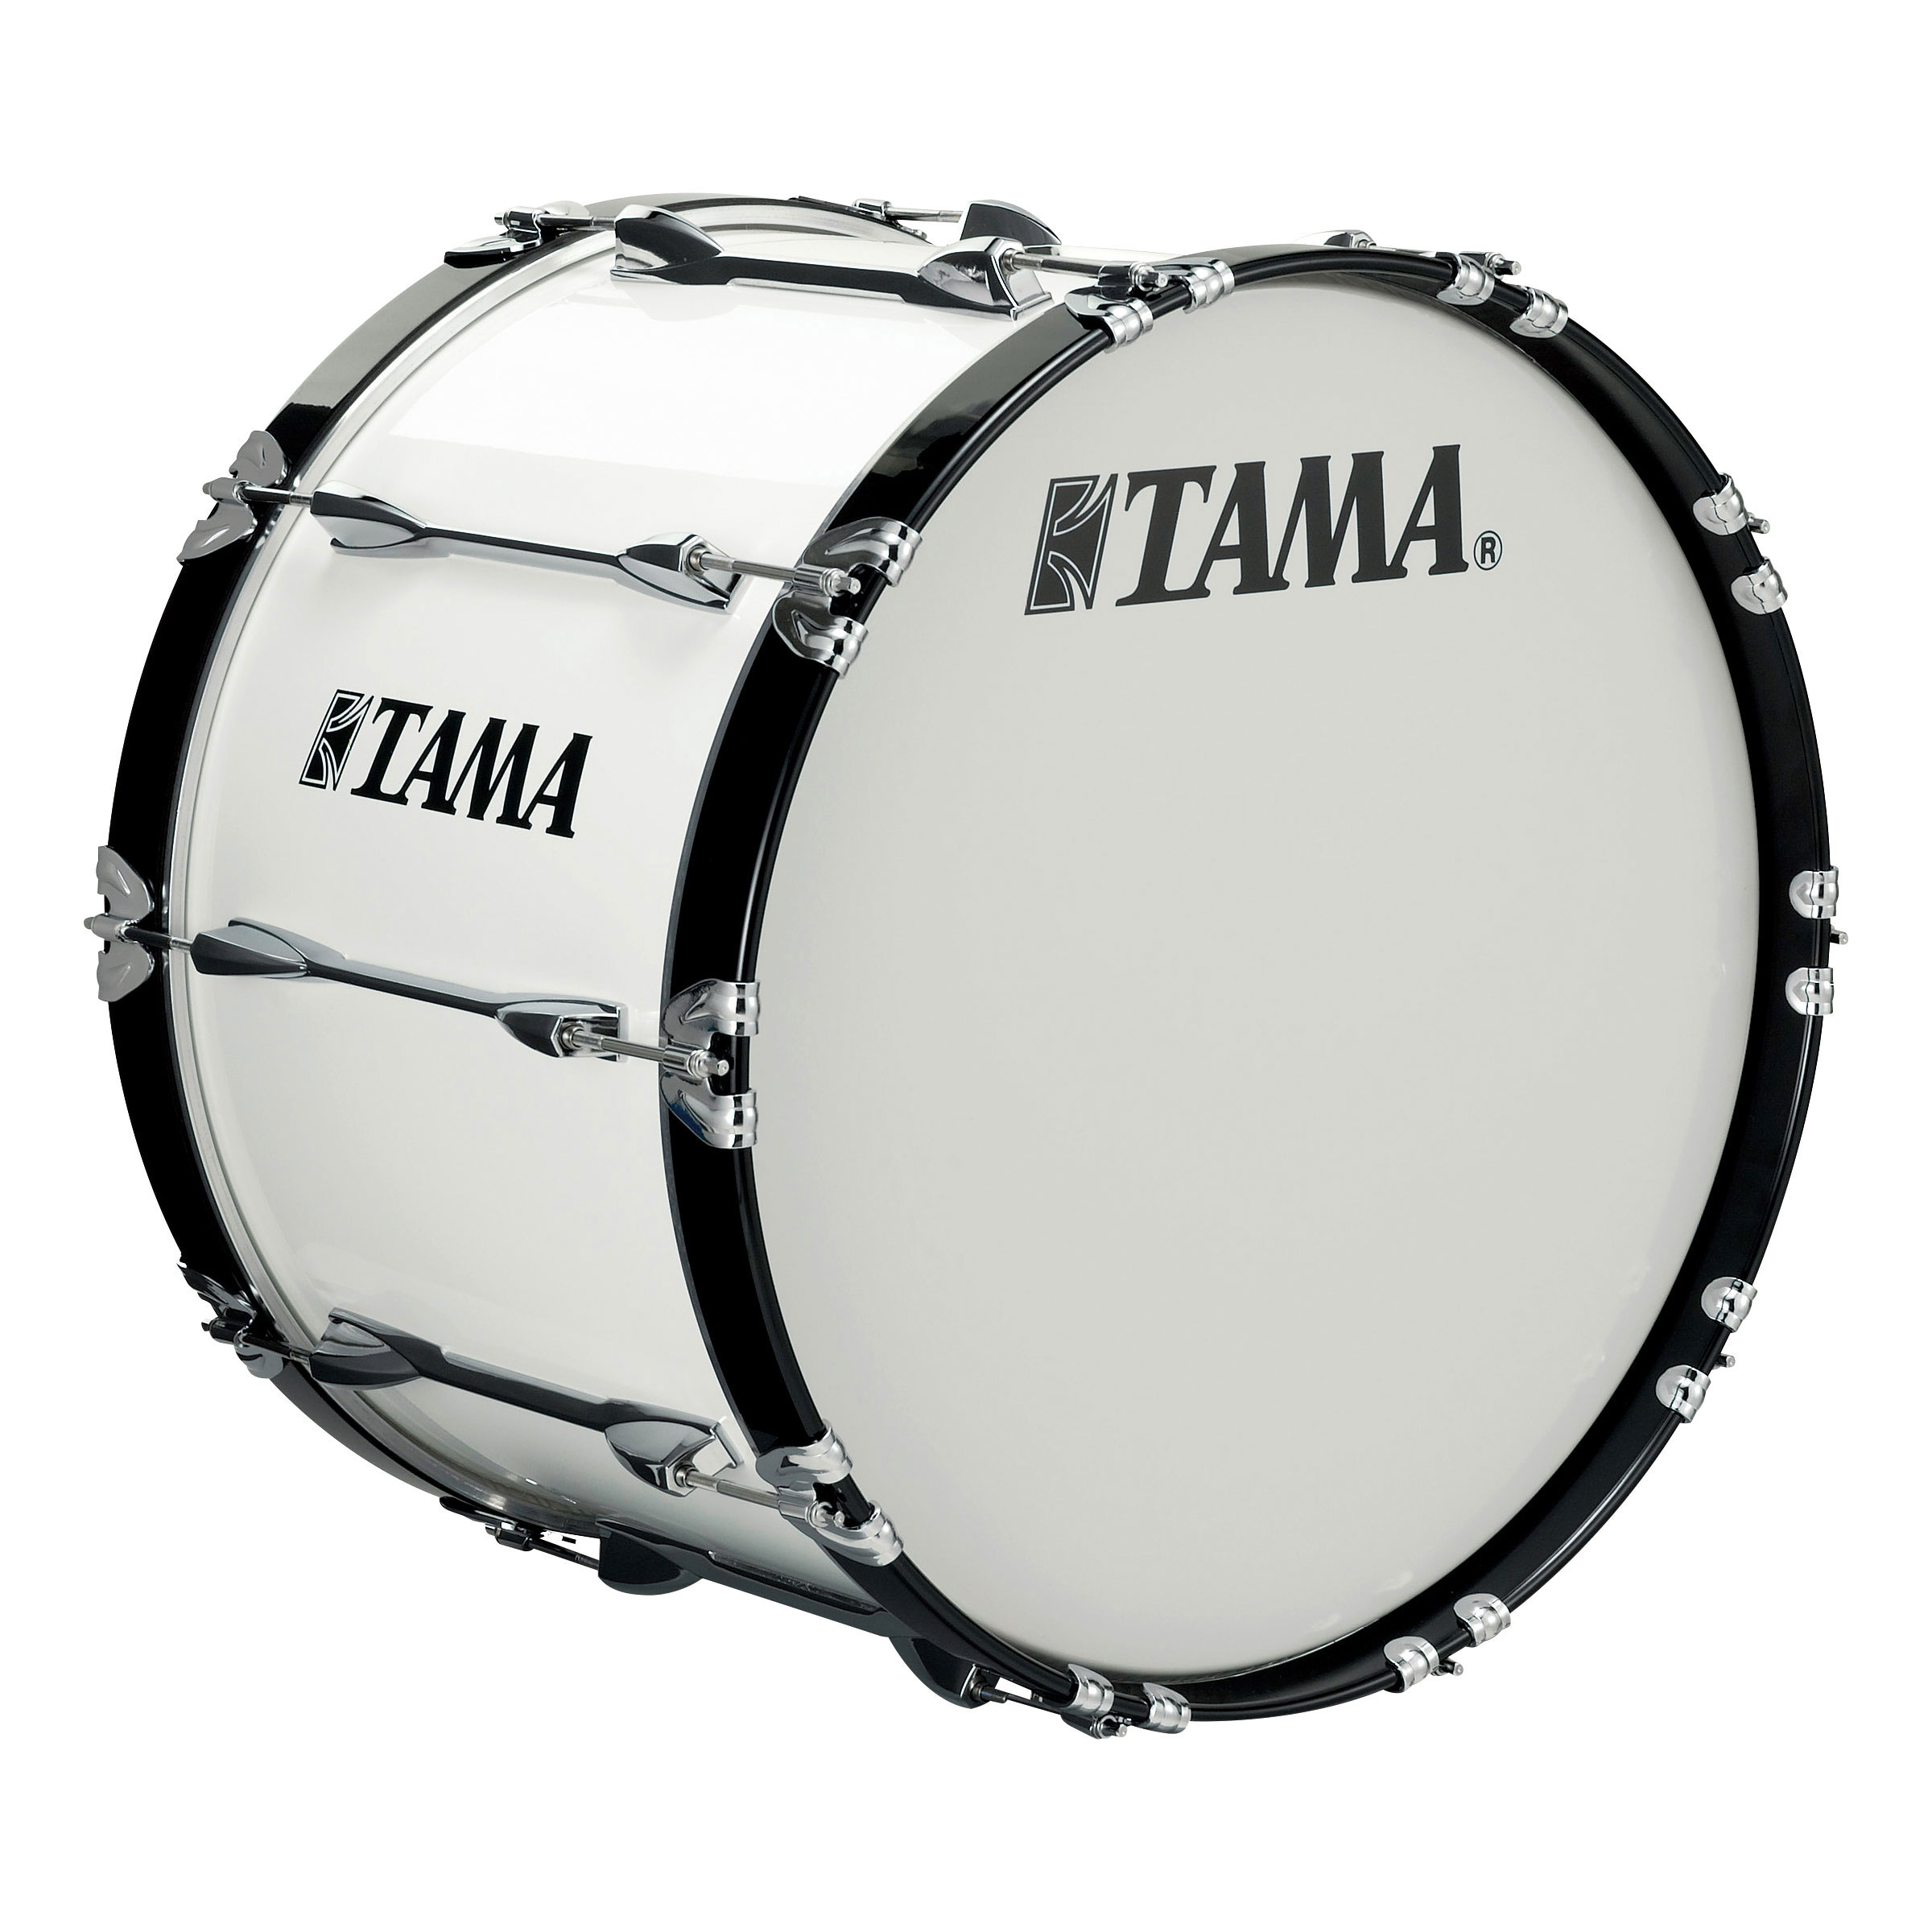 "Tama 16"" StarLight Marching Bass Drum in Sugar White Wrap"